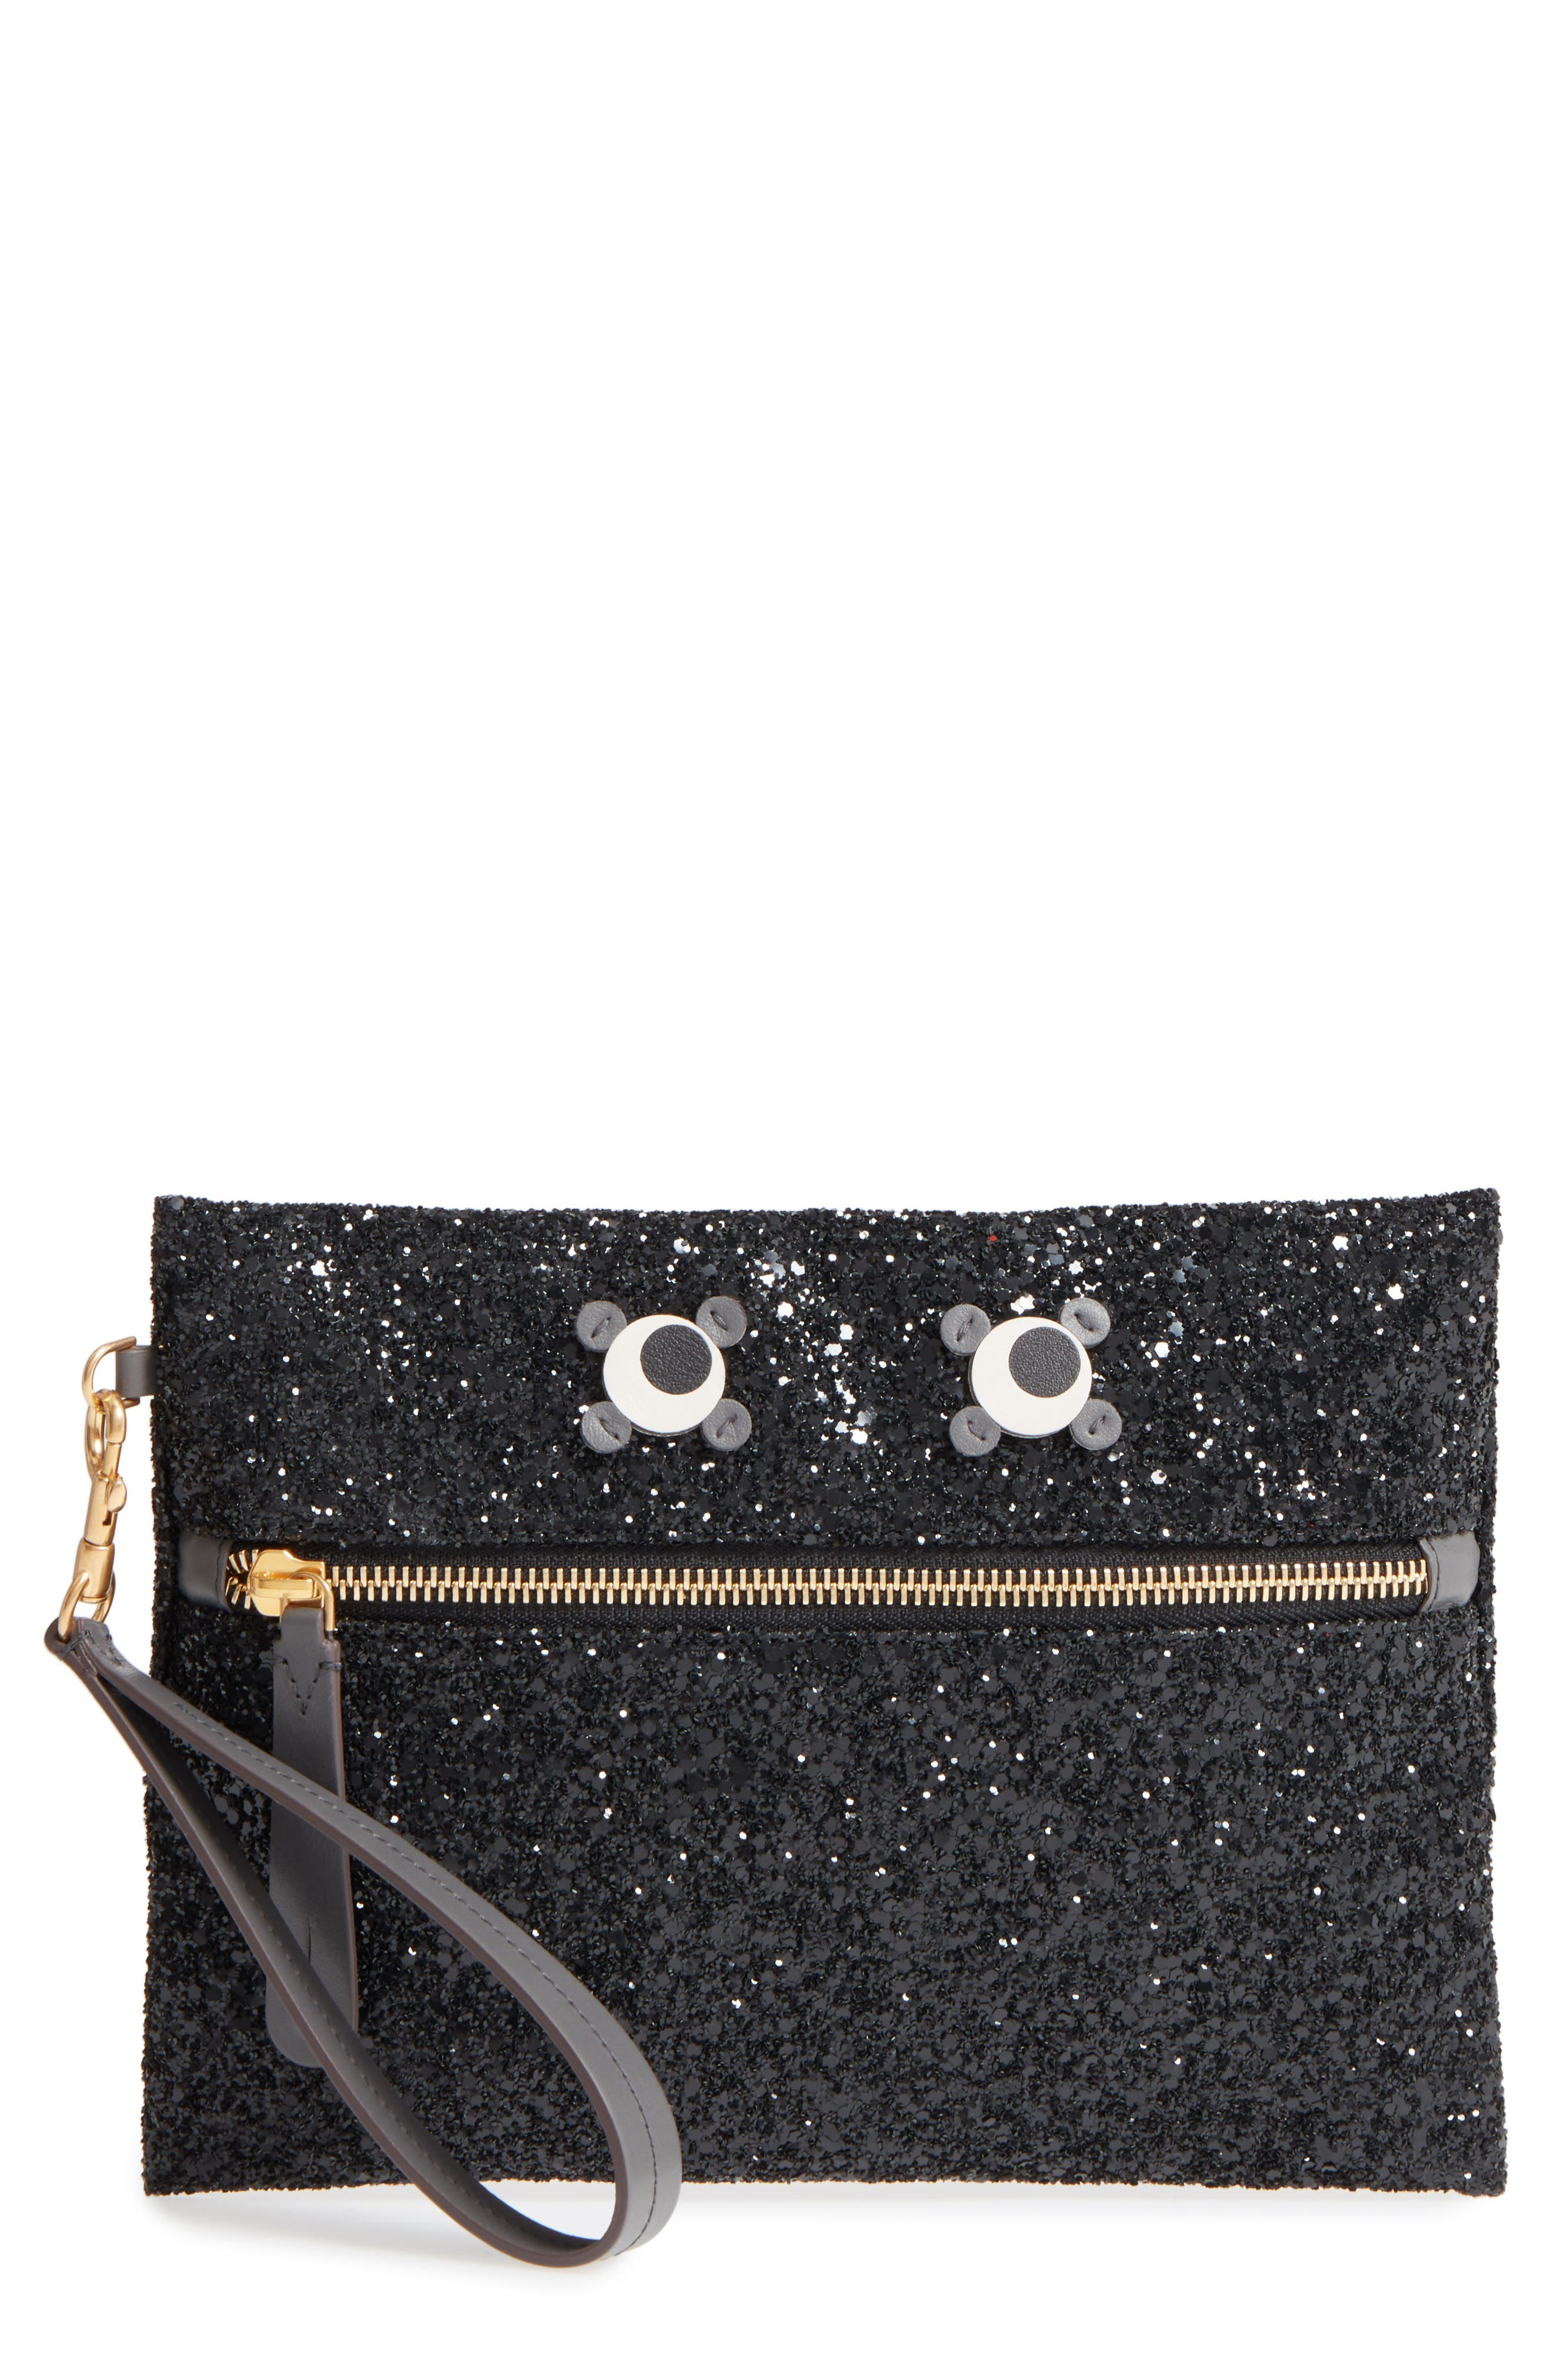 Main Image - Anya Hindmarch Eyes Circulus Glitter Pouch